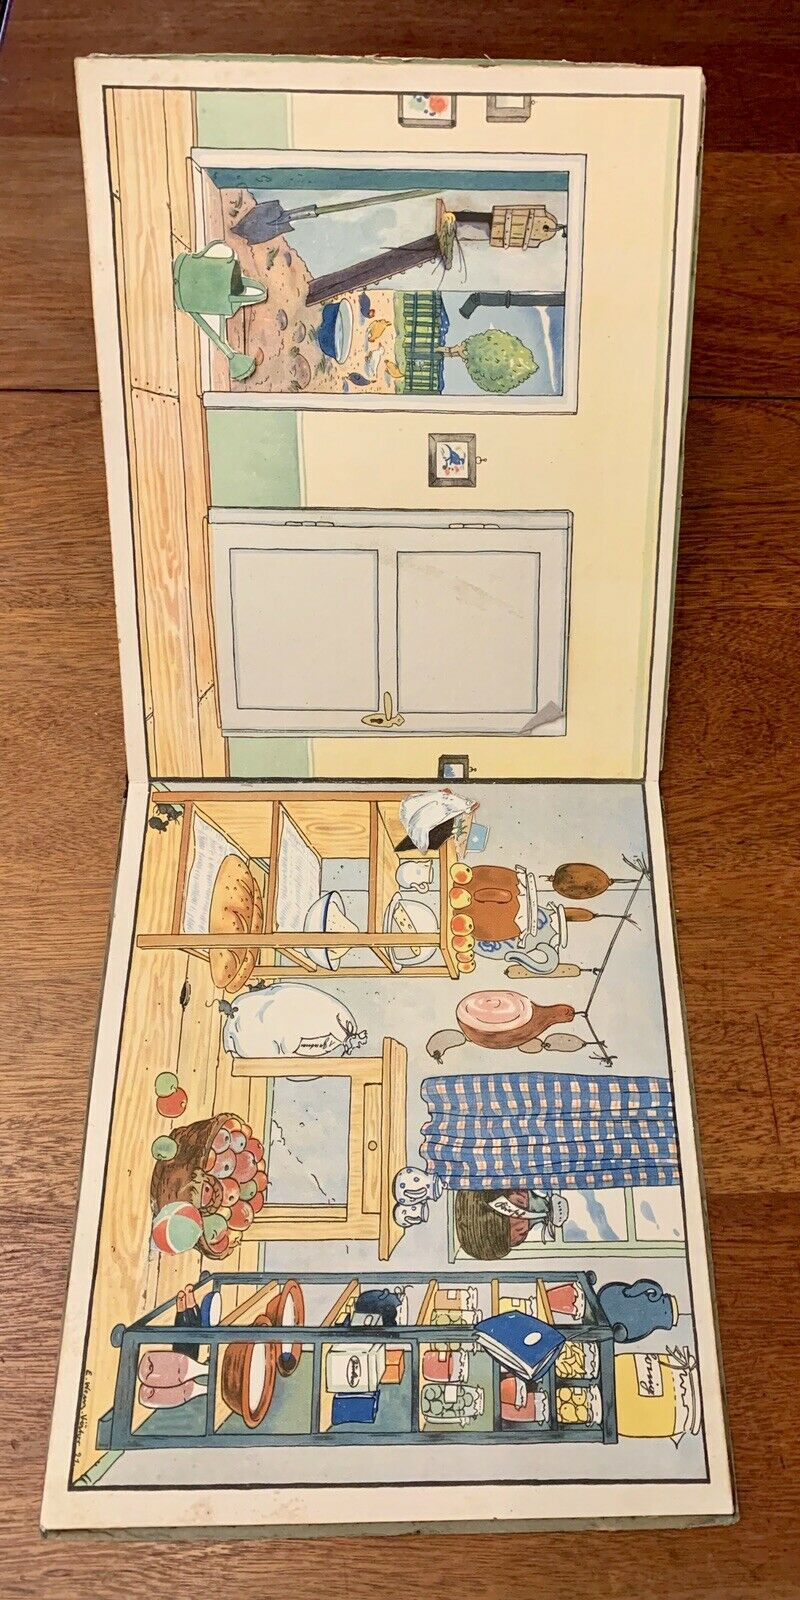 Our Little Doll S House Pop Up Movable Antique Book 1923 Ebay Paper Doll House Antique Books Paper Dolls